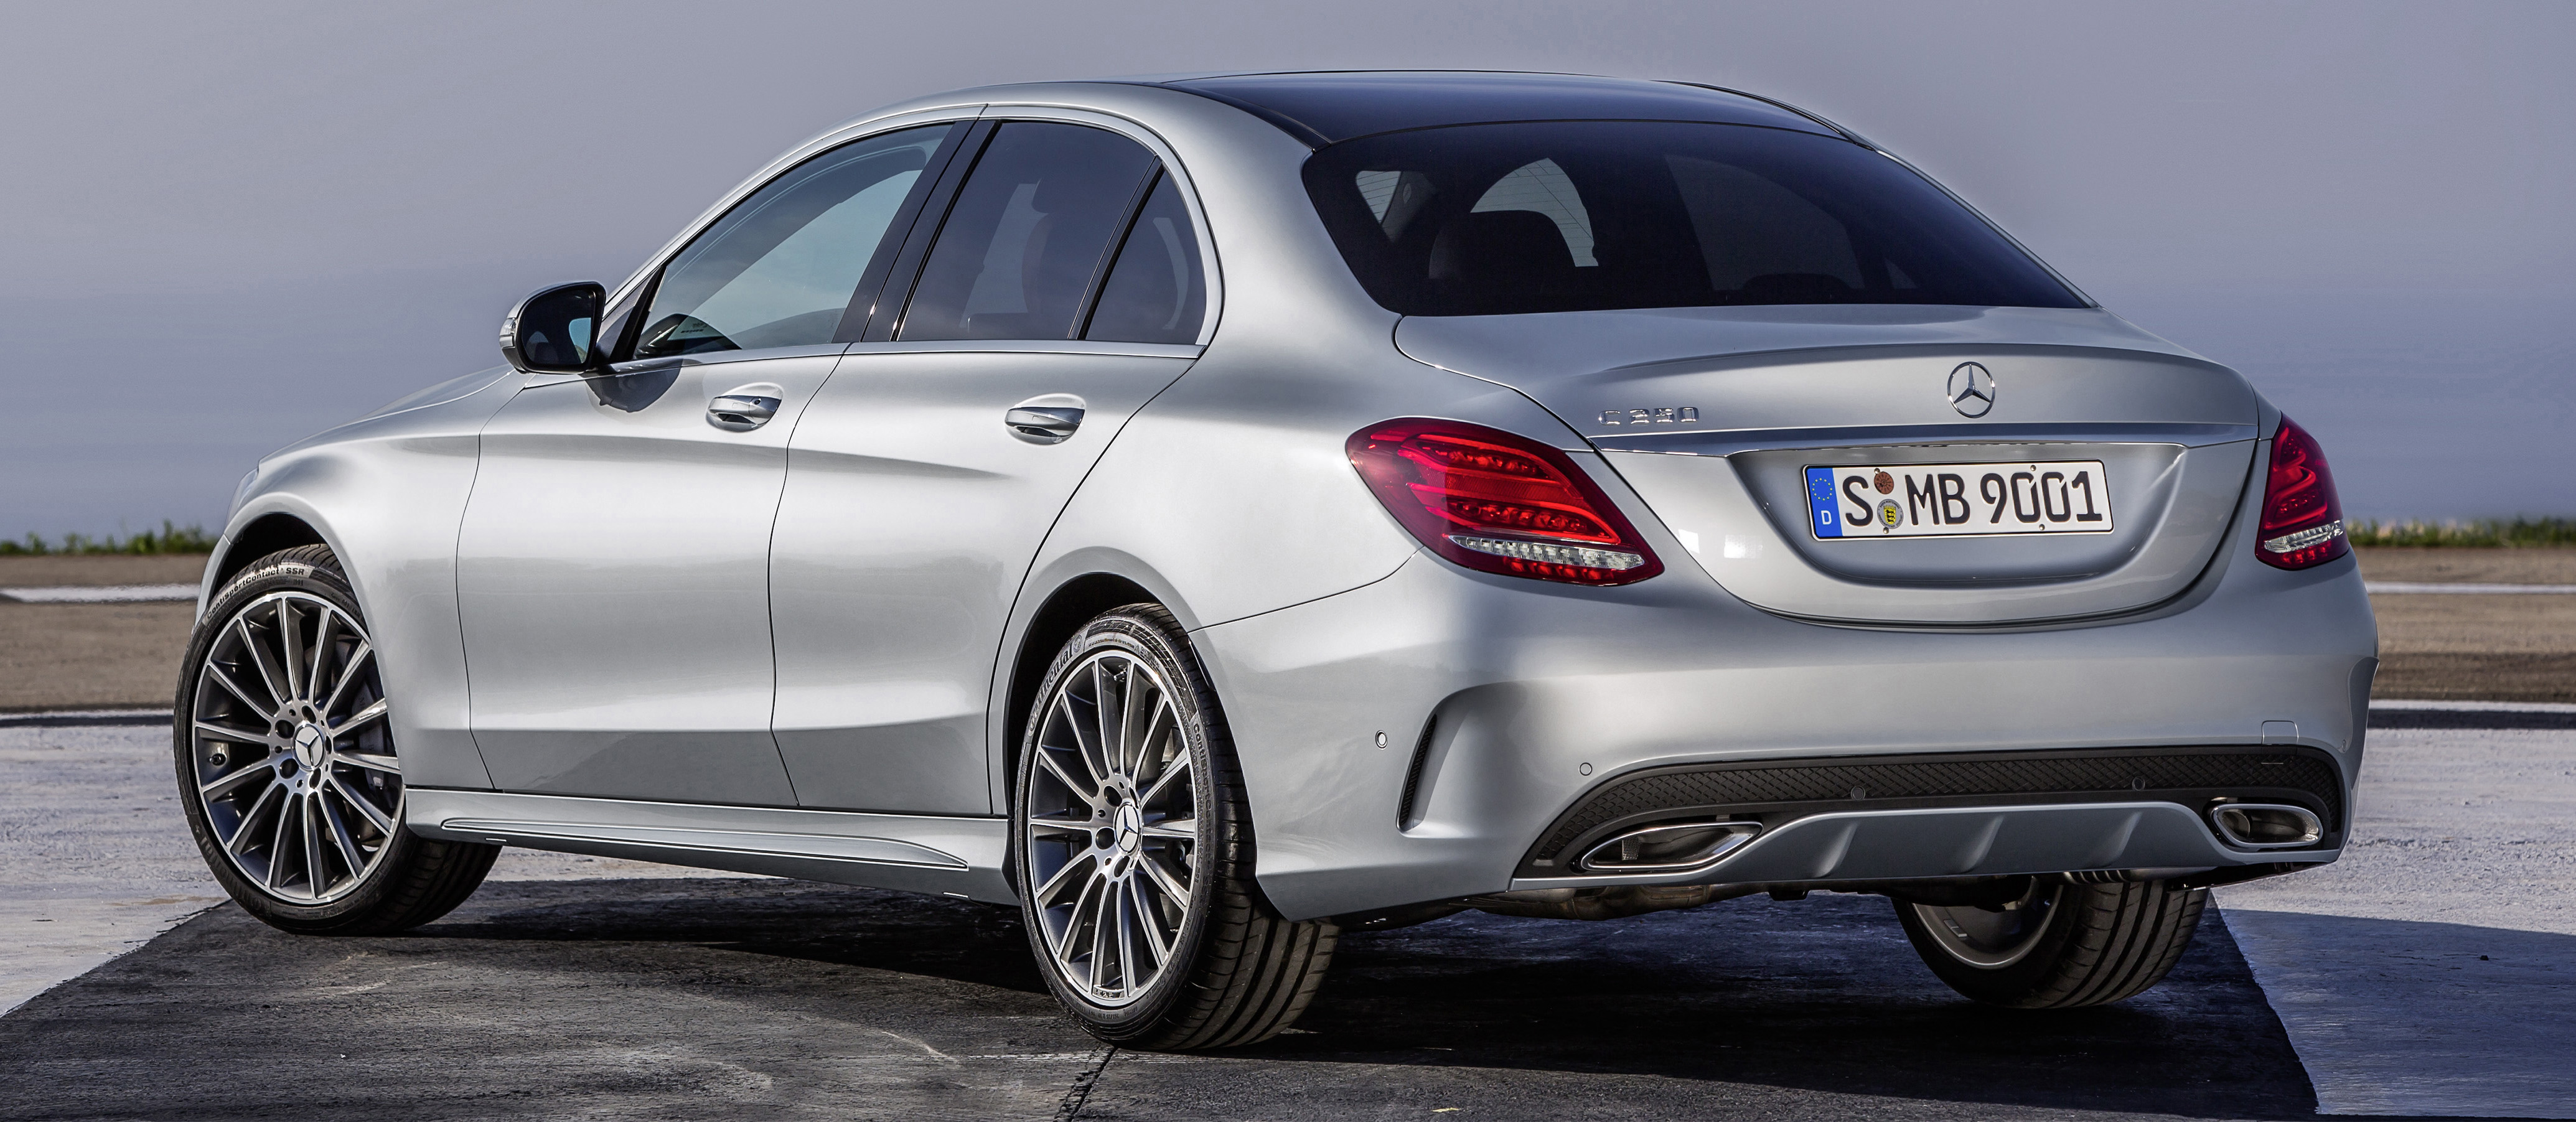 W205 mercedes benz c class first details released image for Mercedes benz of reno staff